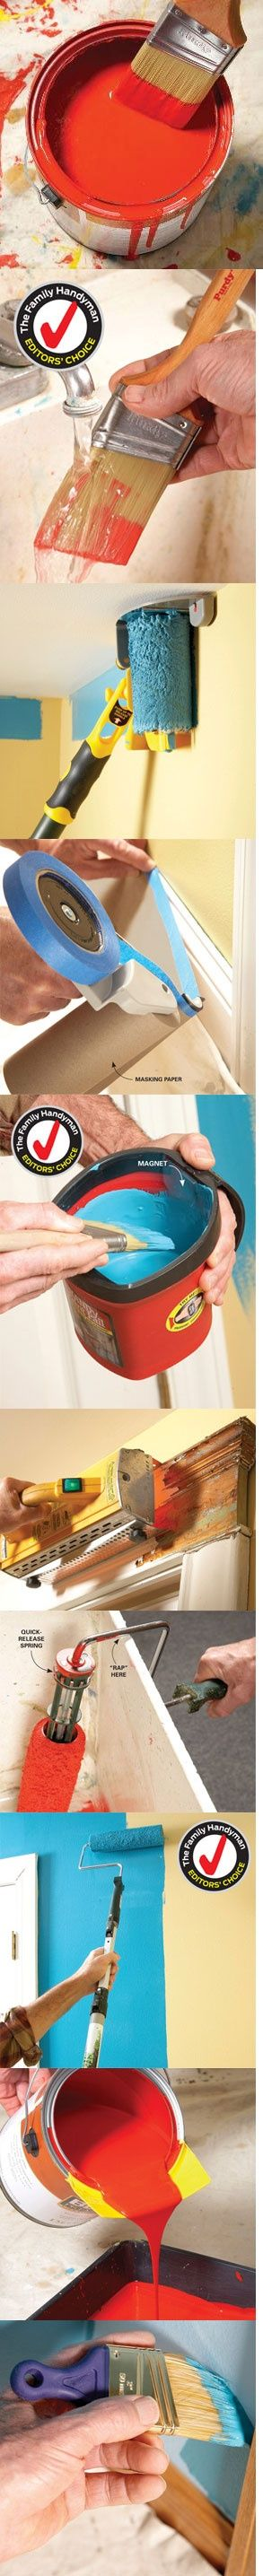 #inspiration #design #color  #homedecoration #decor Experts list the best tools for painting—including brushes, rollers, paint removers, masking tools, cleaning tools, pouring spouts, poles, ladders and more. Find must have tools to make your next painting job easier, faster and better at http://www.familyhandyman.com/DIY-Projects/Painting/Painting-Tools/best-diy-painting-tools/View-All